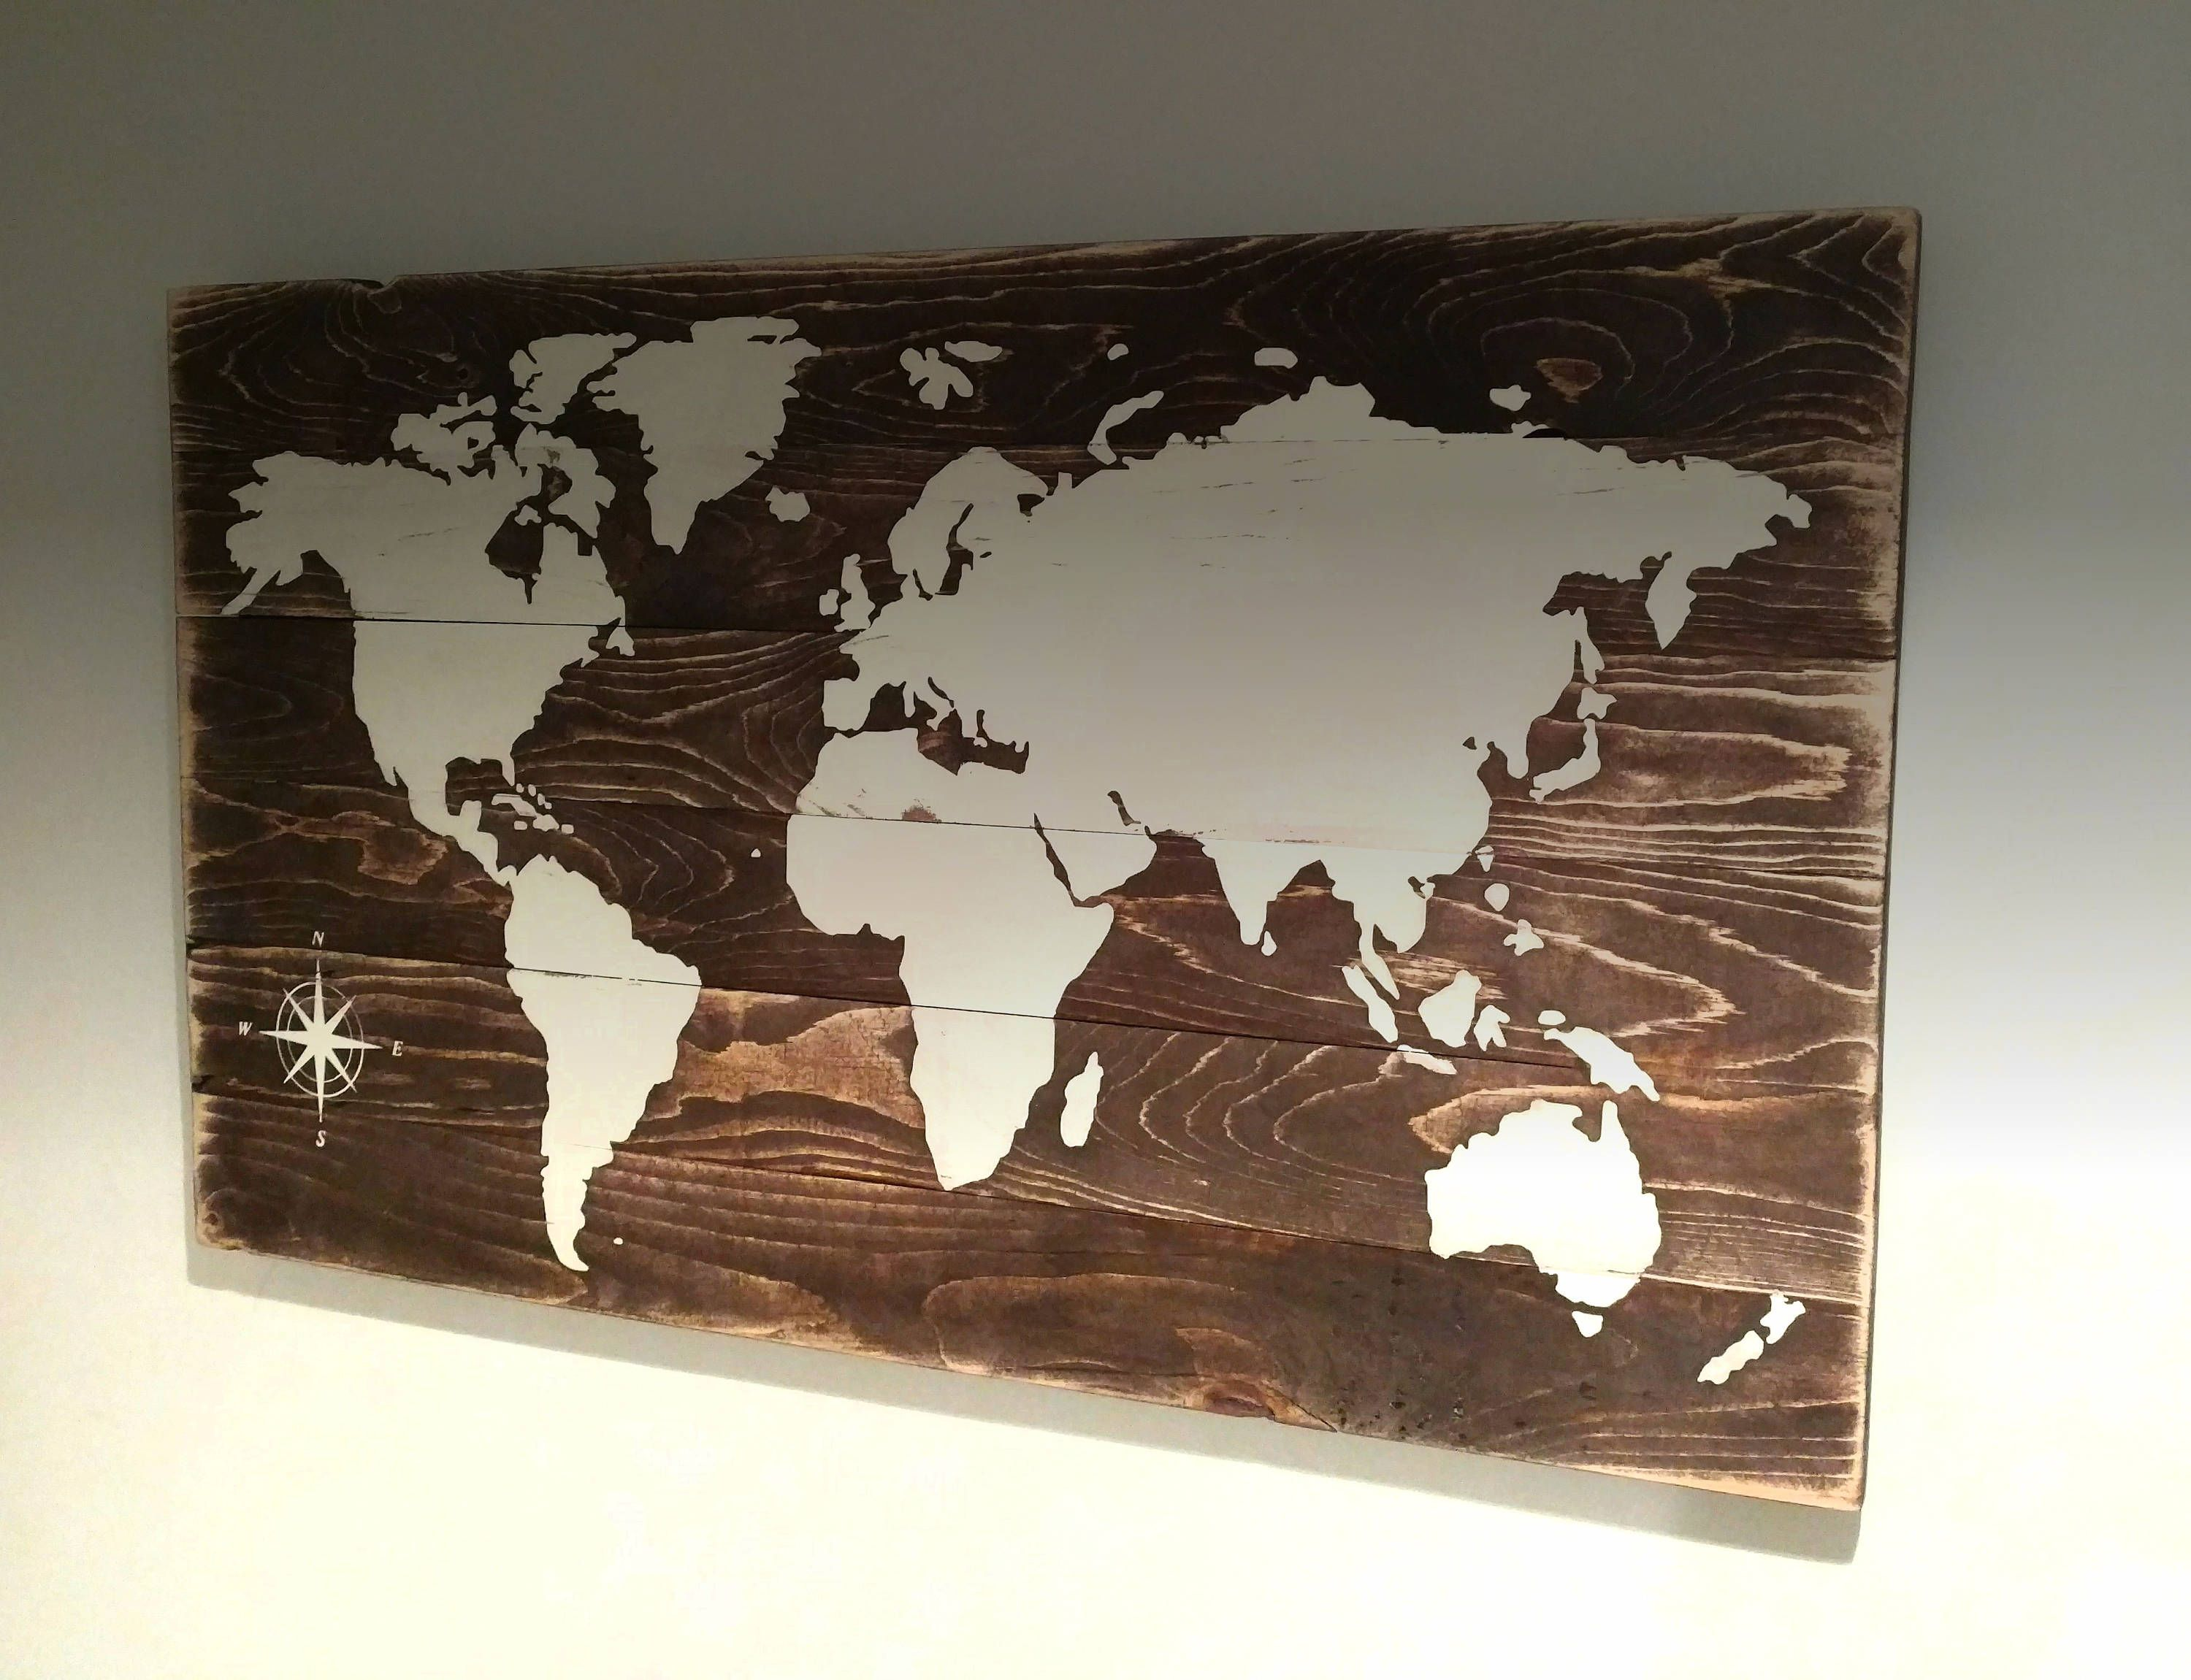 Rustic world map world decor living room decor wall art map rustic world map world decor living room decor wall art map decor gumiabroncs Image collections